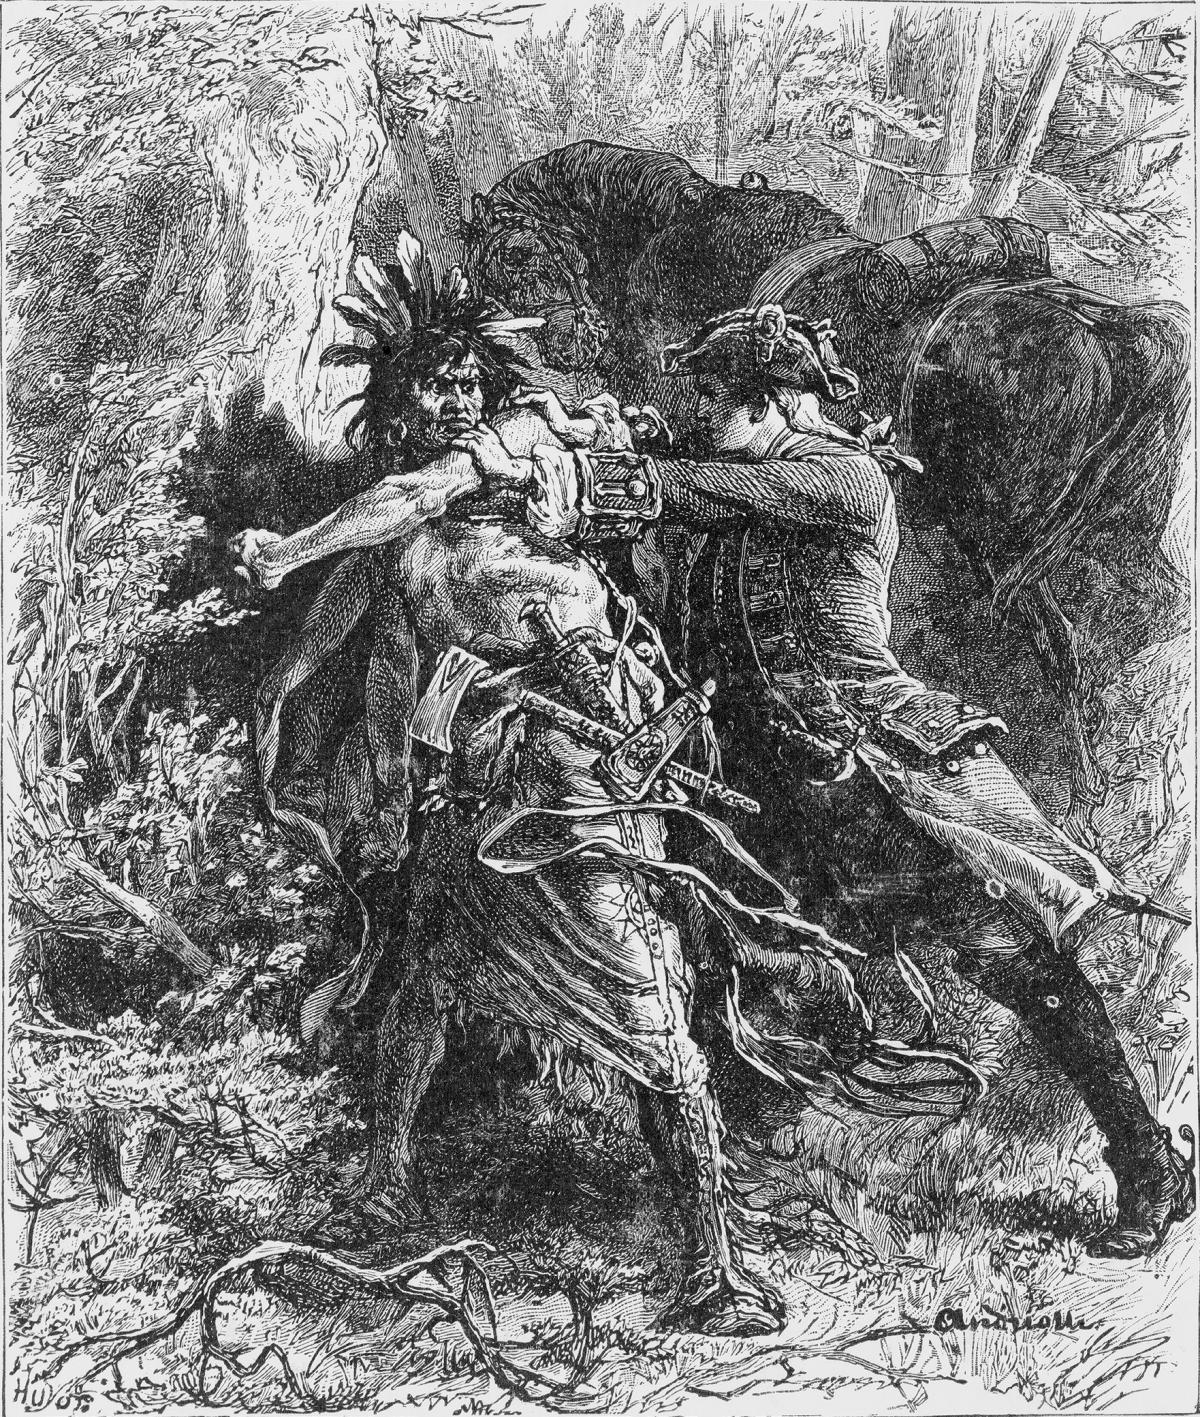 Black and white illustration of a militiaman fighting hand-to-hand with a Mohawk warrior in the deep forest